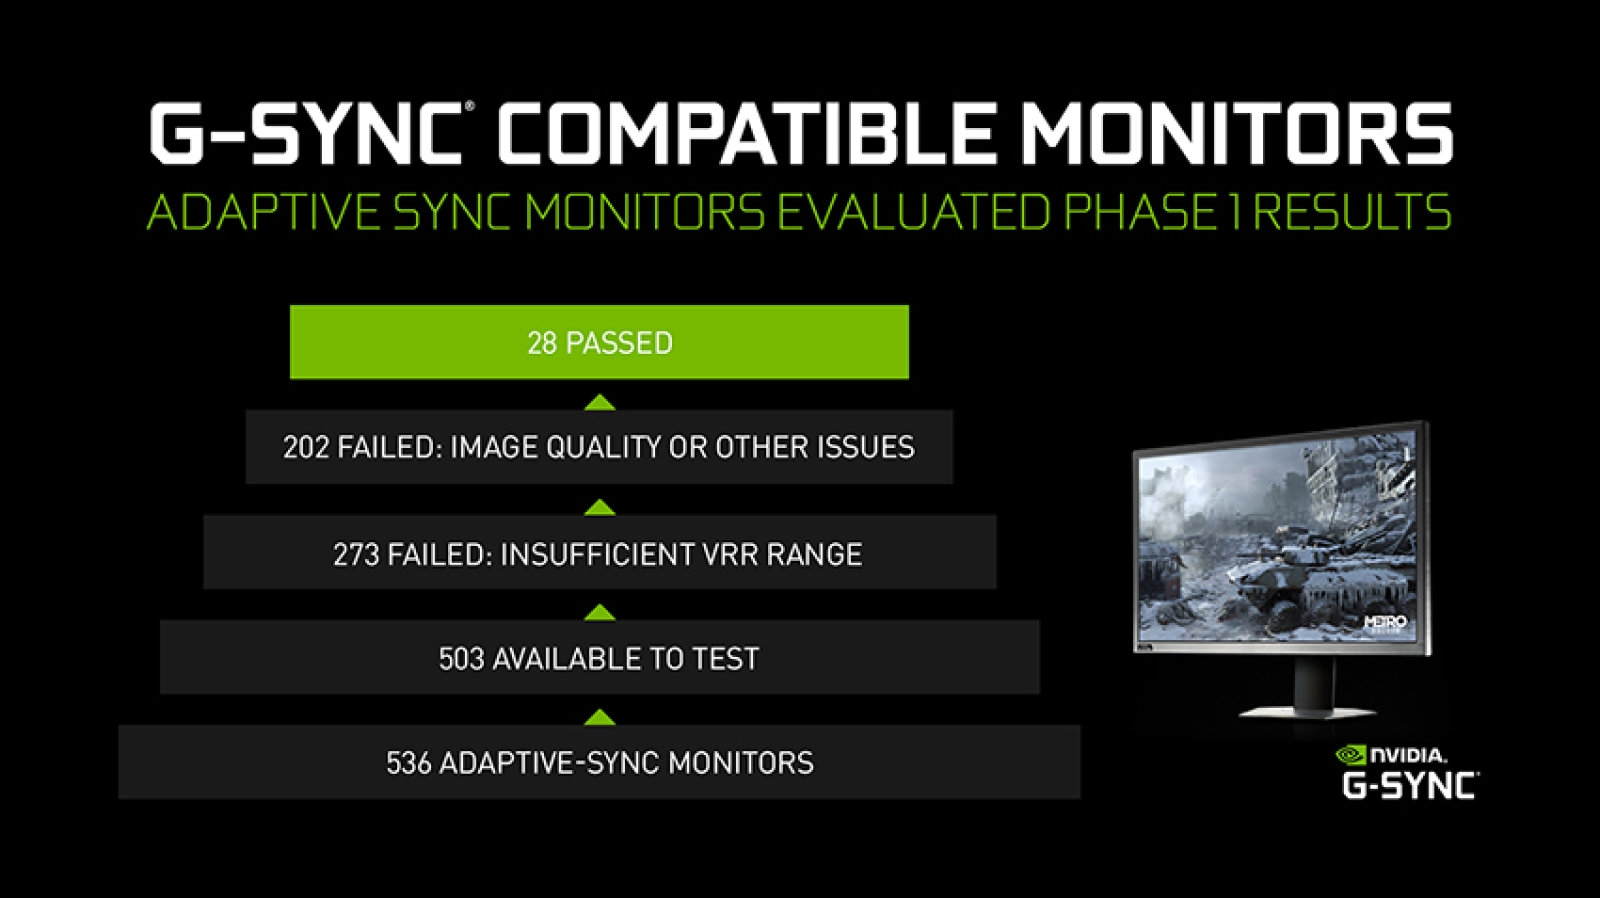 NVIDIA certifies another 16 gaming monitors as 'G-Sync Compatible' | DeviceDaily.com